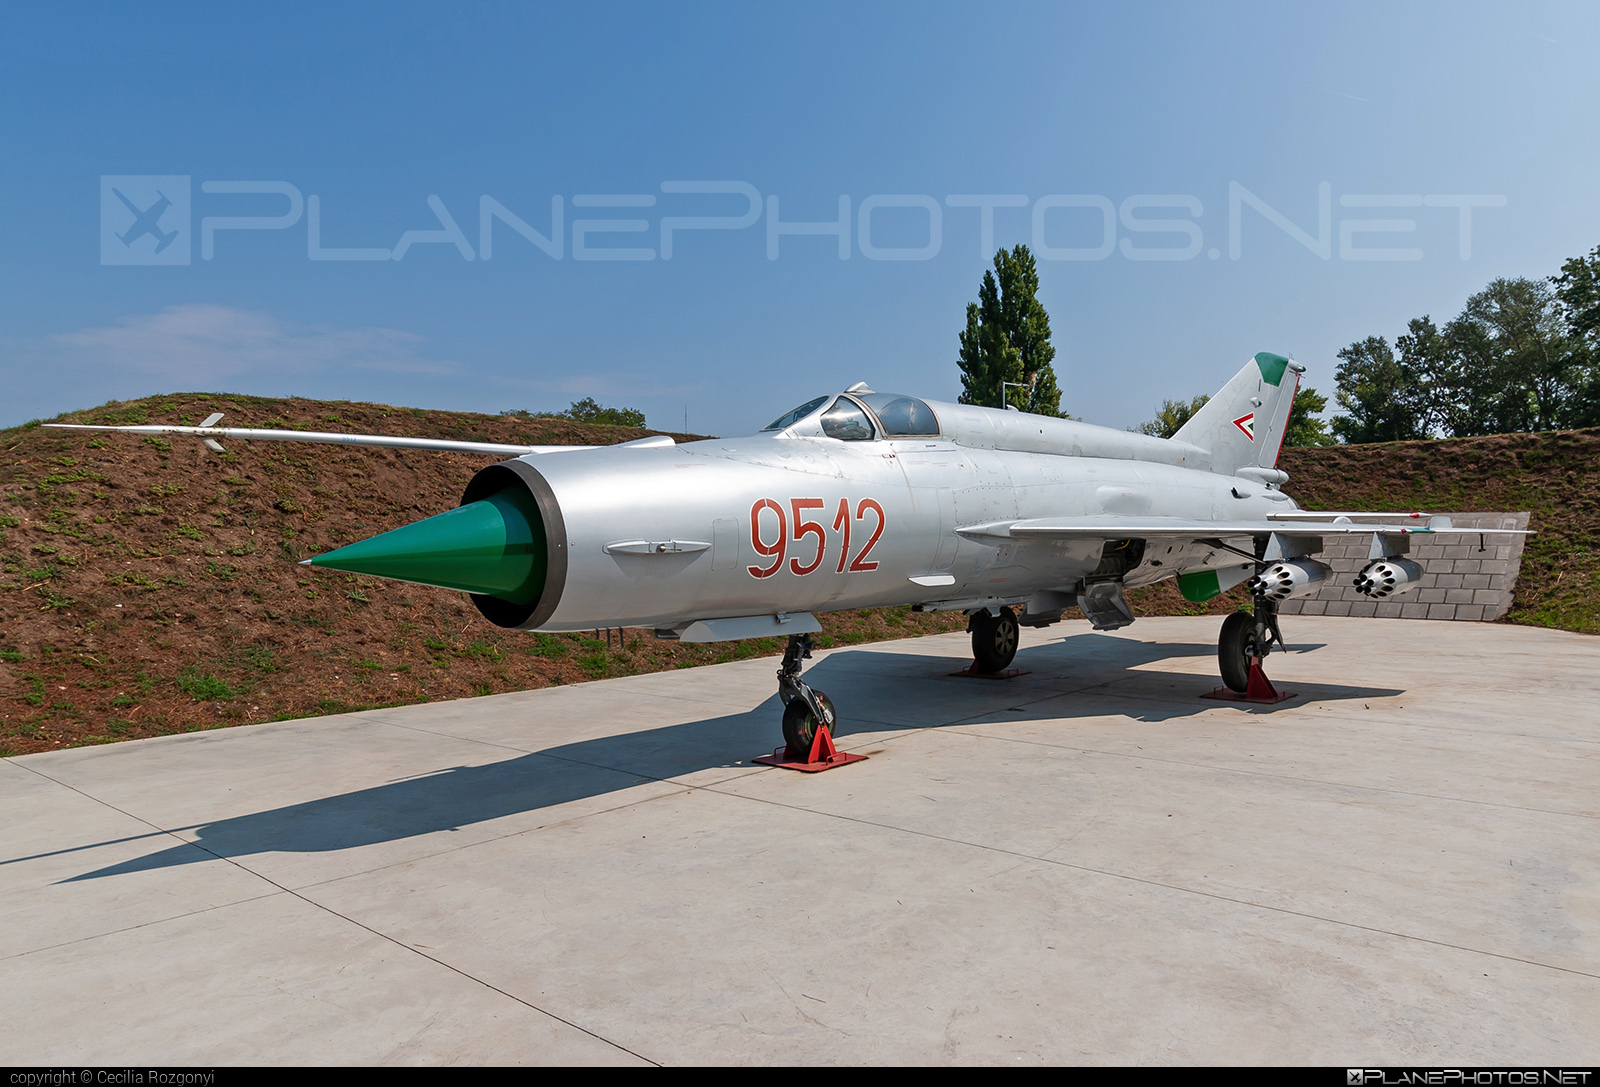 Mikoyan-Gurevich MiG-21MF - 9512 operated by Magyar Légierő (Hungarian Air Force) #hungarianairforce #magyarlegiero #mig #mig21 #mig21mf #mikoyangurevich